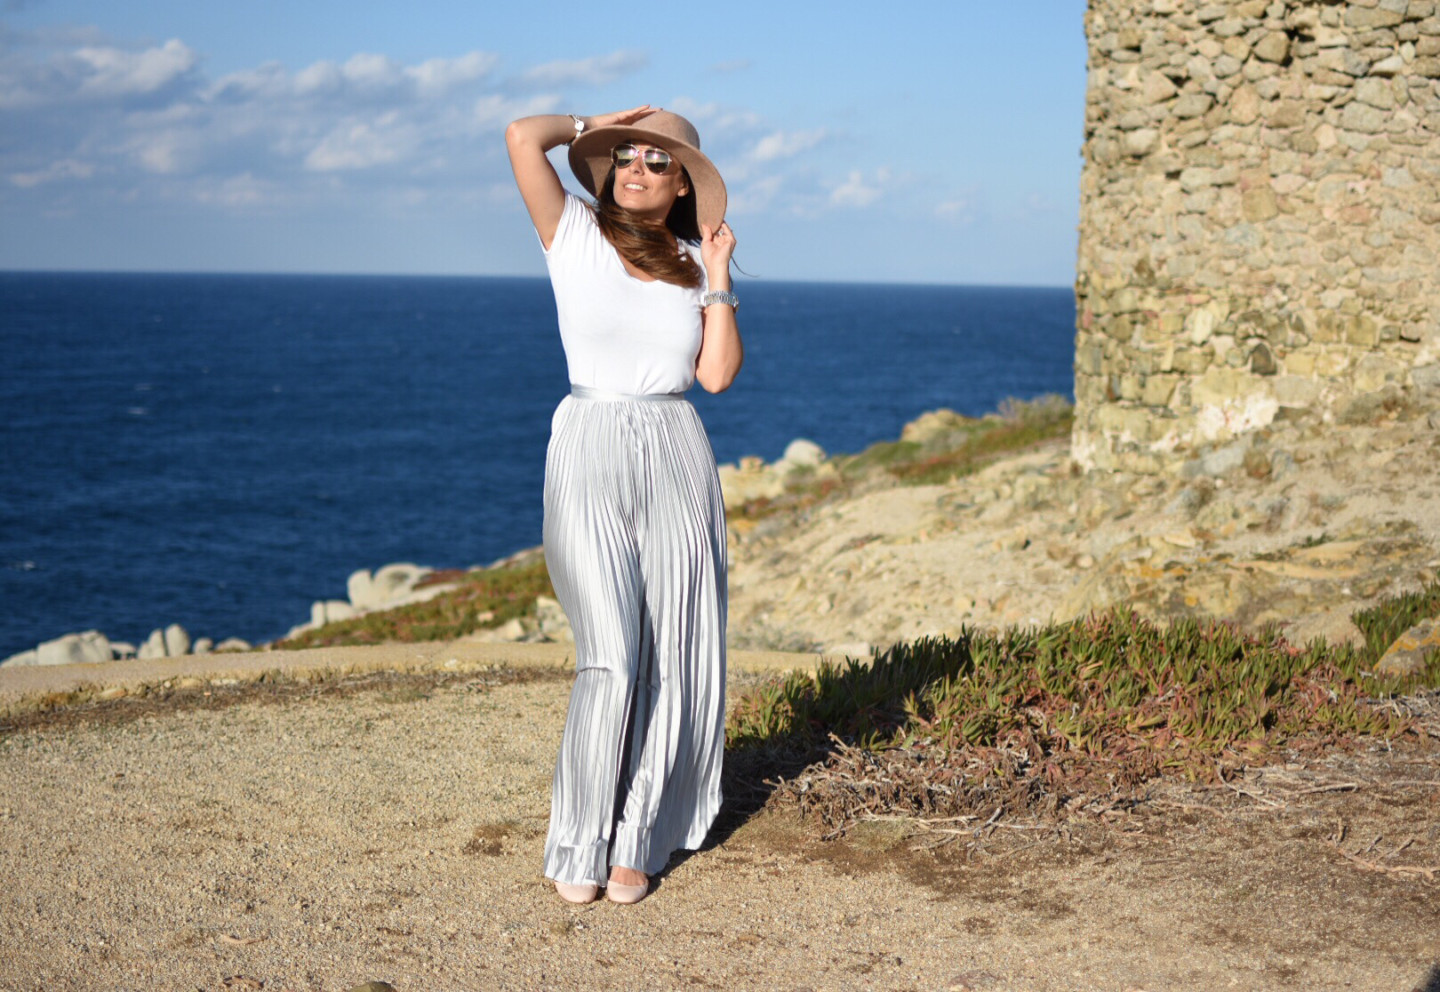 corsica-gonna-argento-lunga-must-have-travel-outfit-street-style-valentina-coco